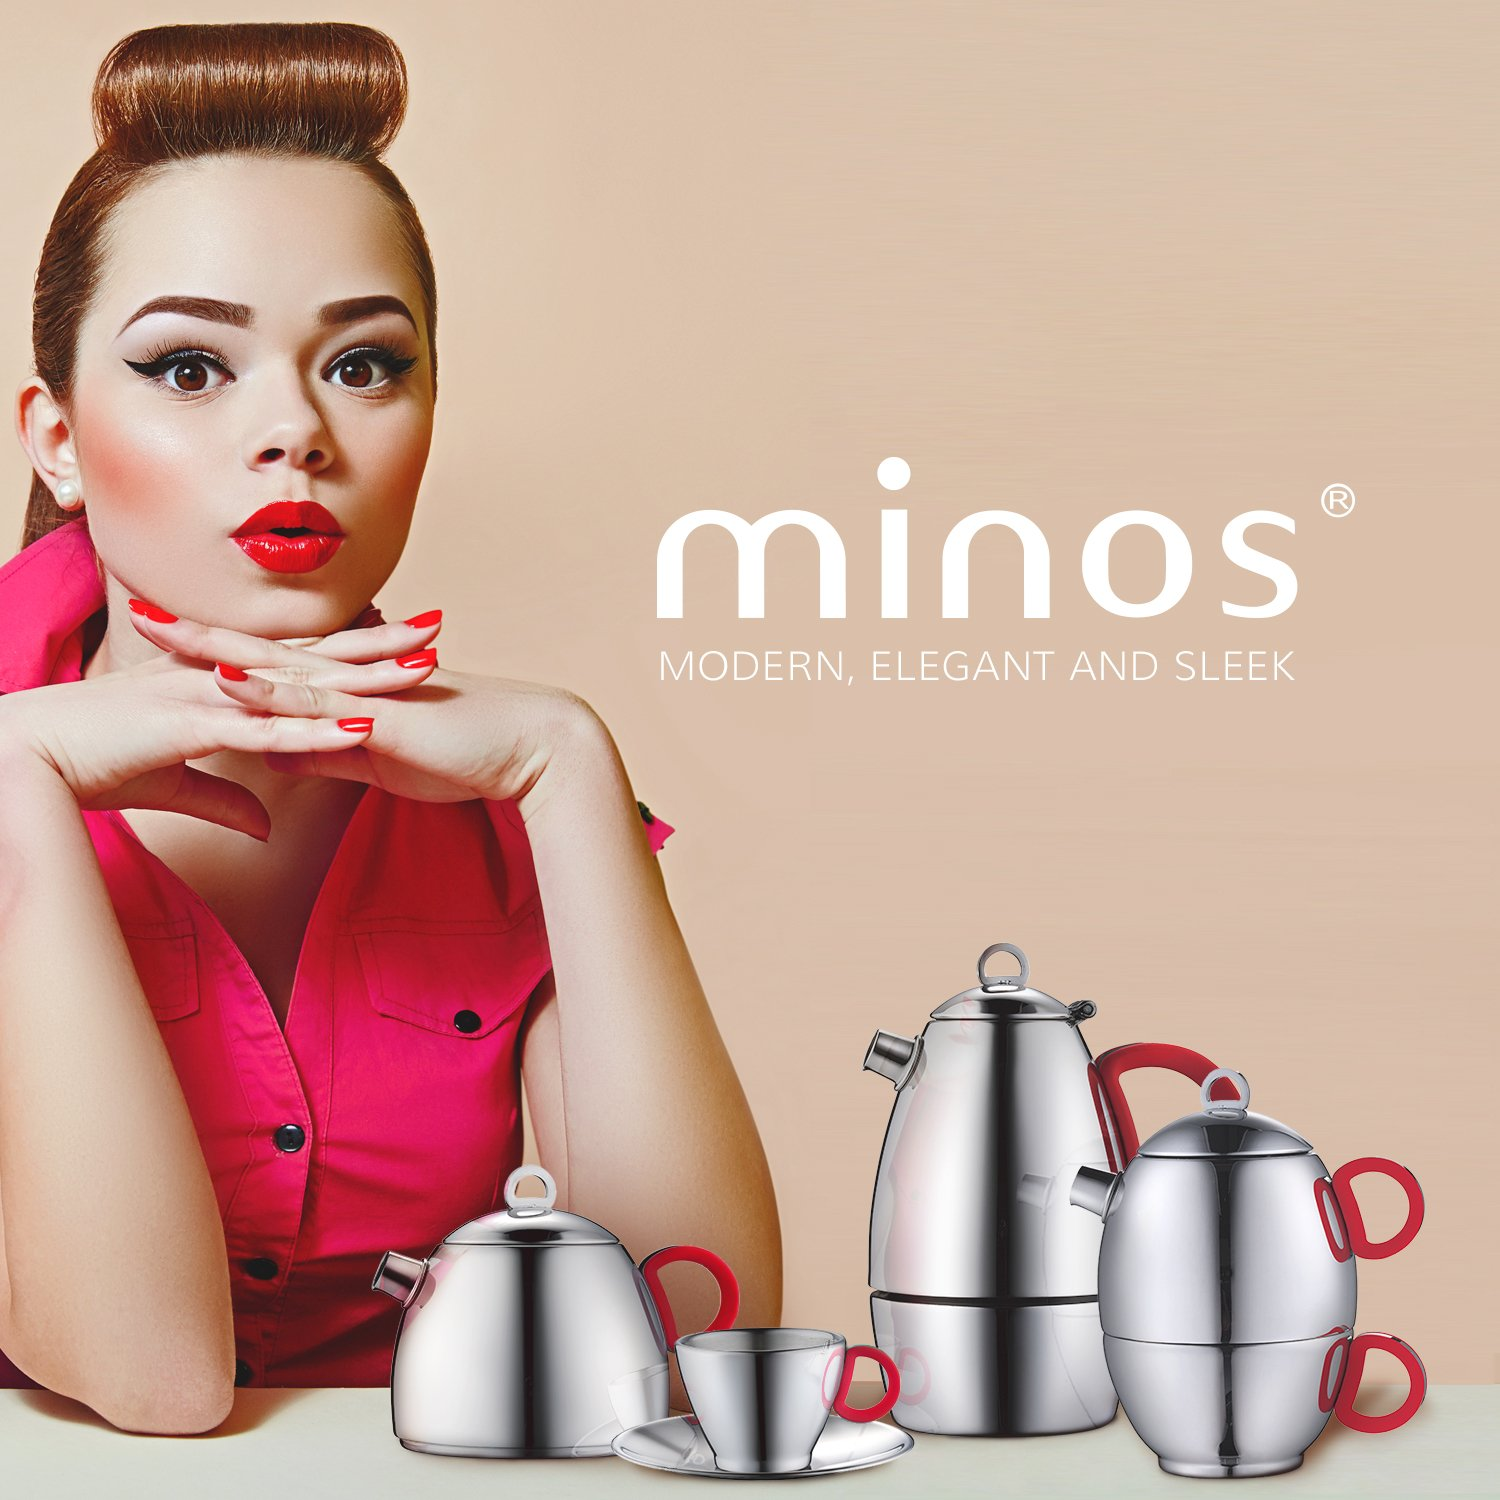 Minos Stunning Stainless Steel Teapot And Cup For One Set With Silicon Handle - 8.5 OZ Liquid Capacity - Hand-polished, Scratch, Wear and Tear Resistant Best for Serving Tea and Coffee by Minos (Image #5)